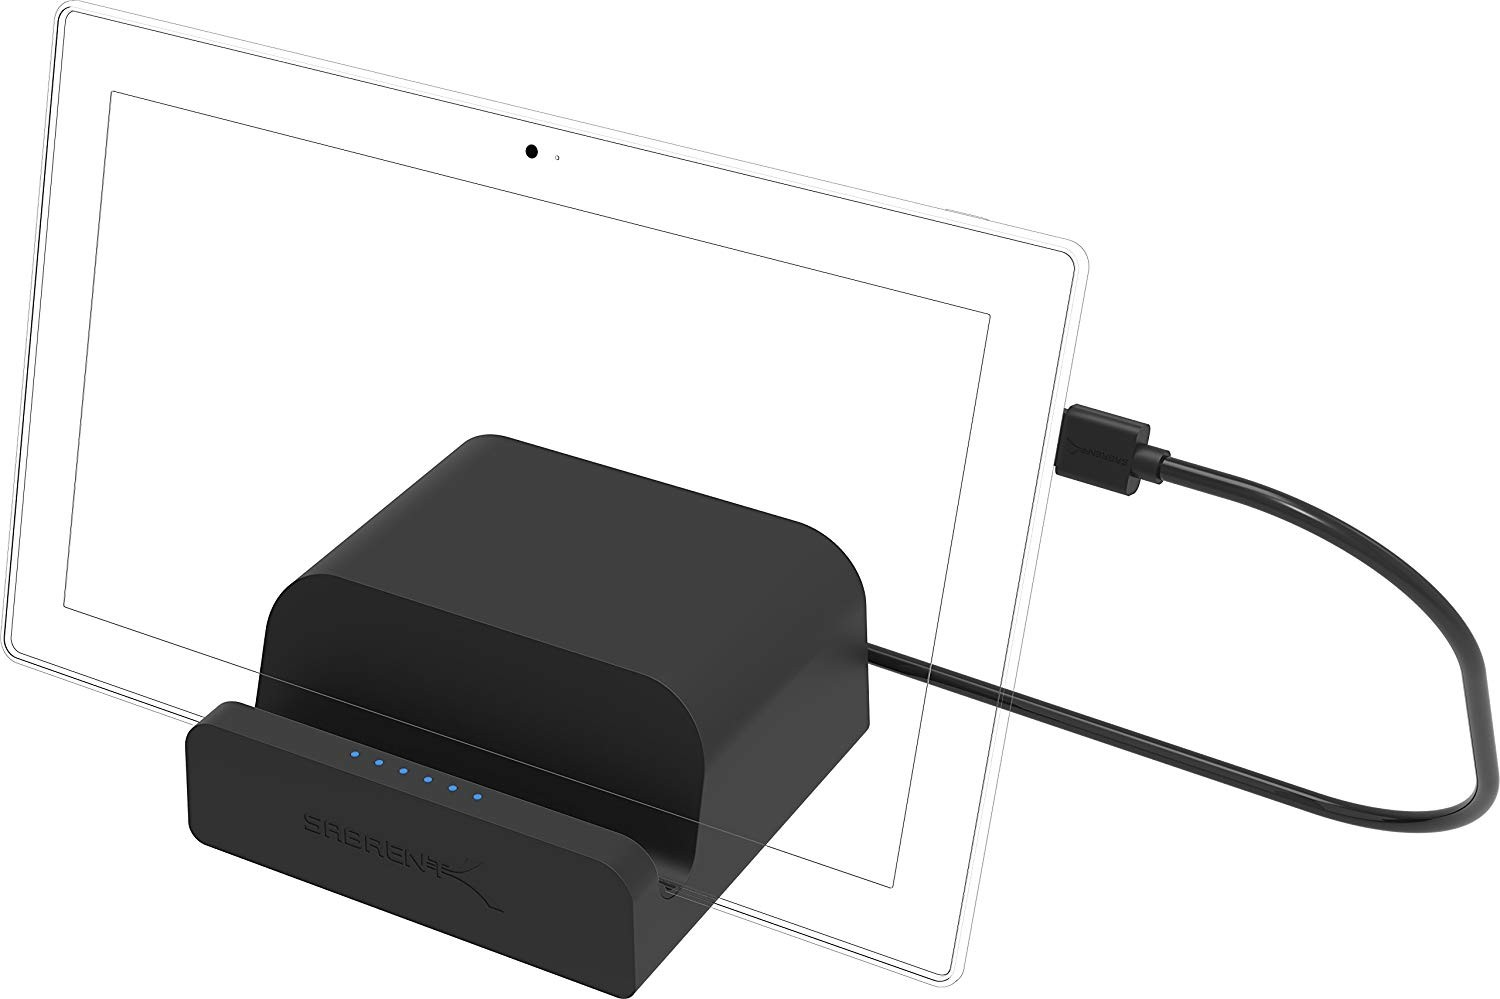 **DISCONTINUED**Sabrent USB 3.0 Universal Docking Station, DS-RICA